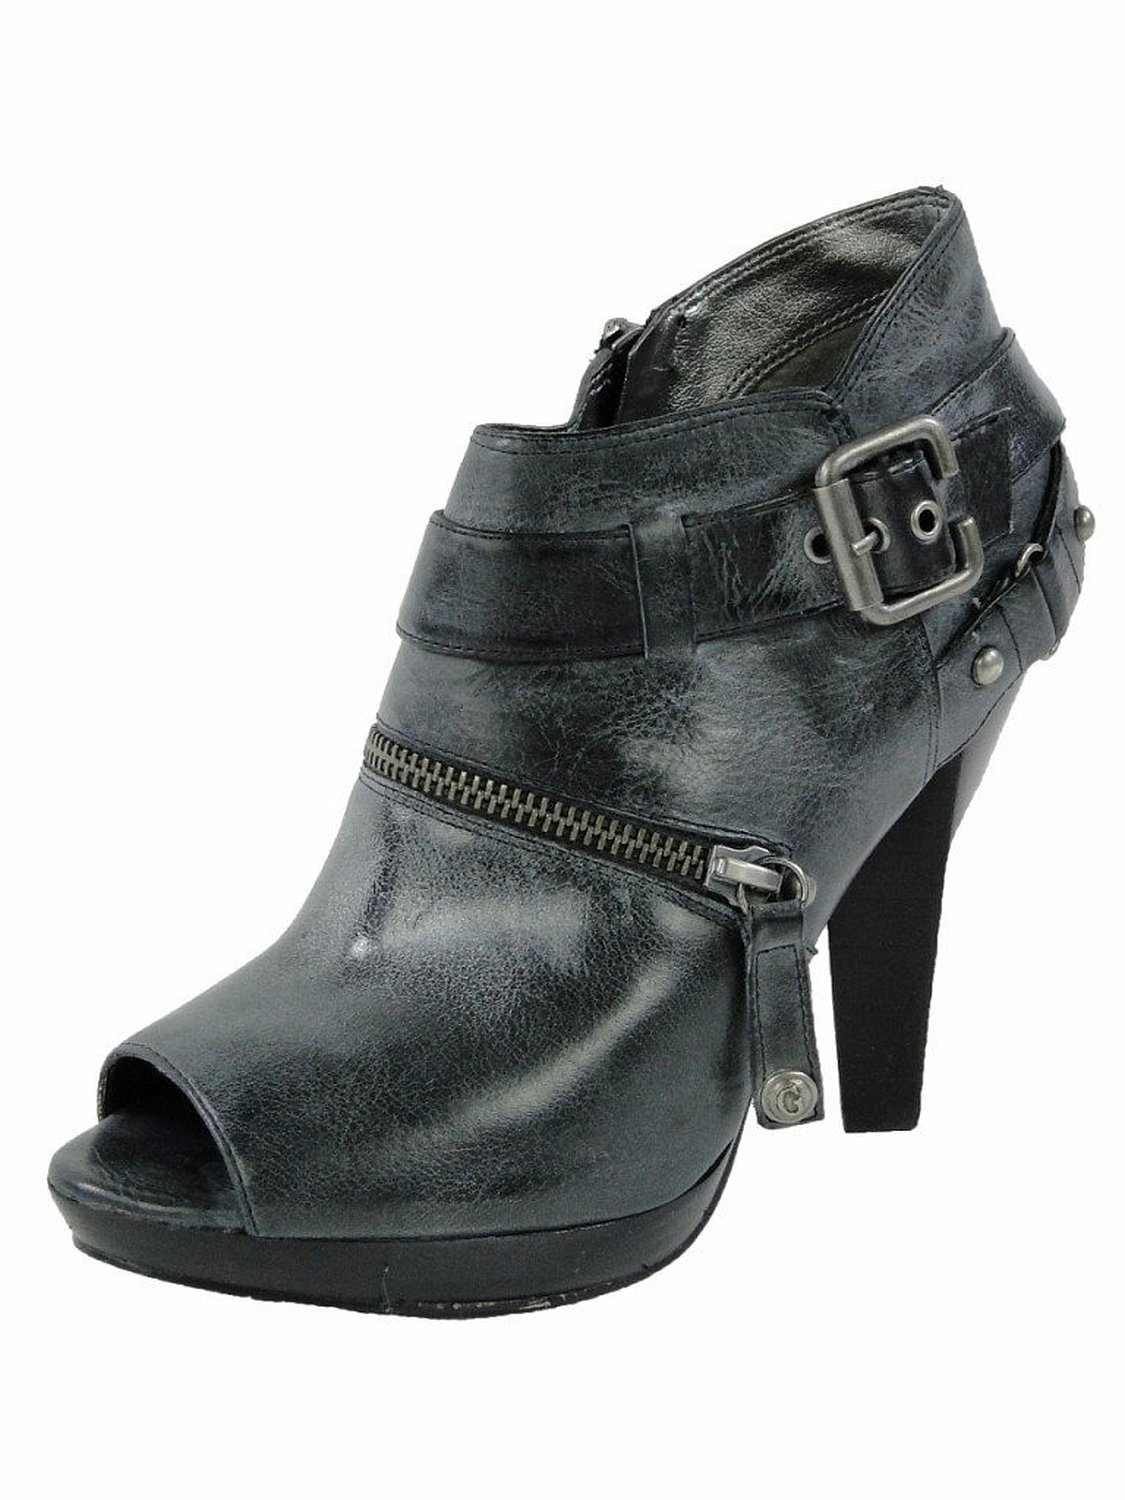 Size 10 M Guess Women's Oakridge Gray Leather Open Toe Heel Booties